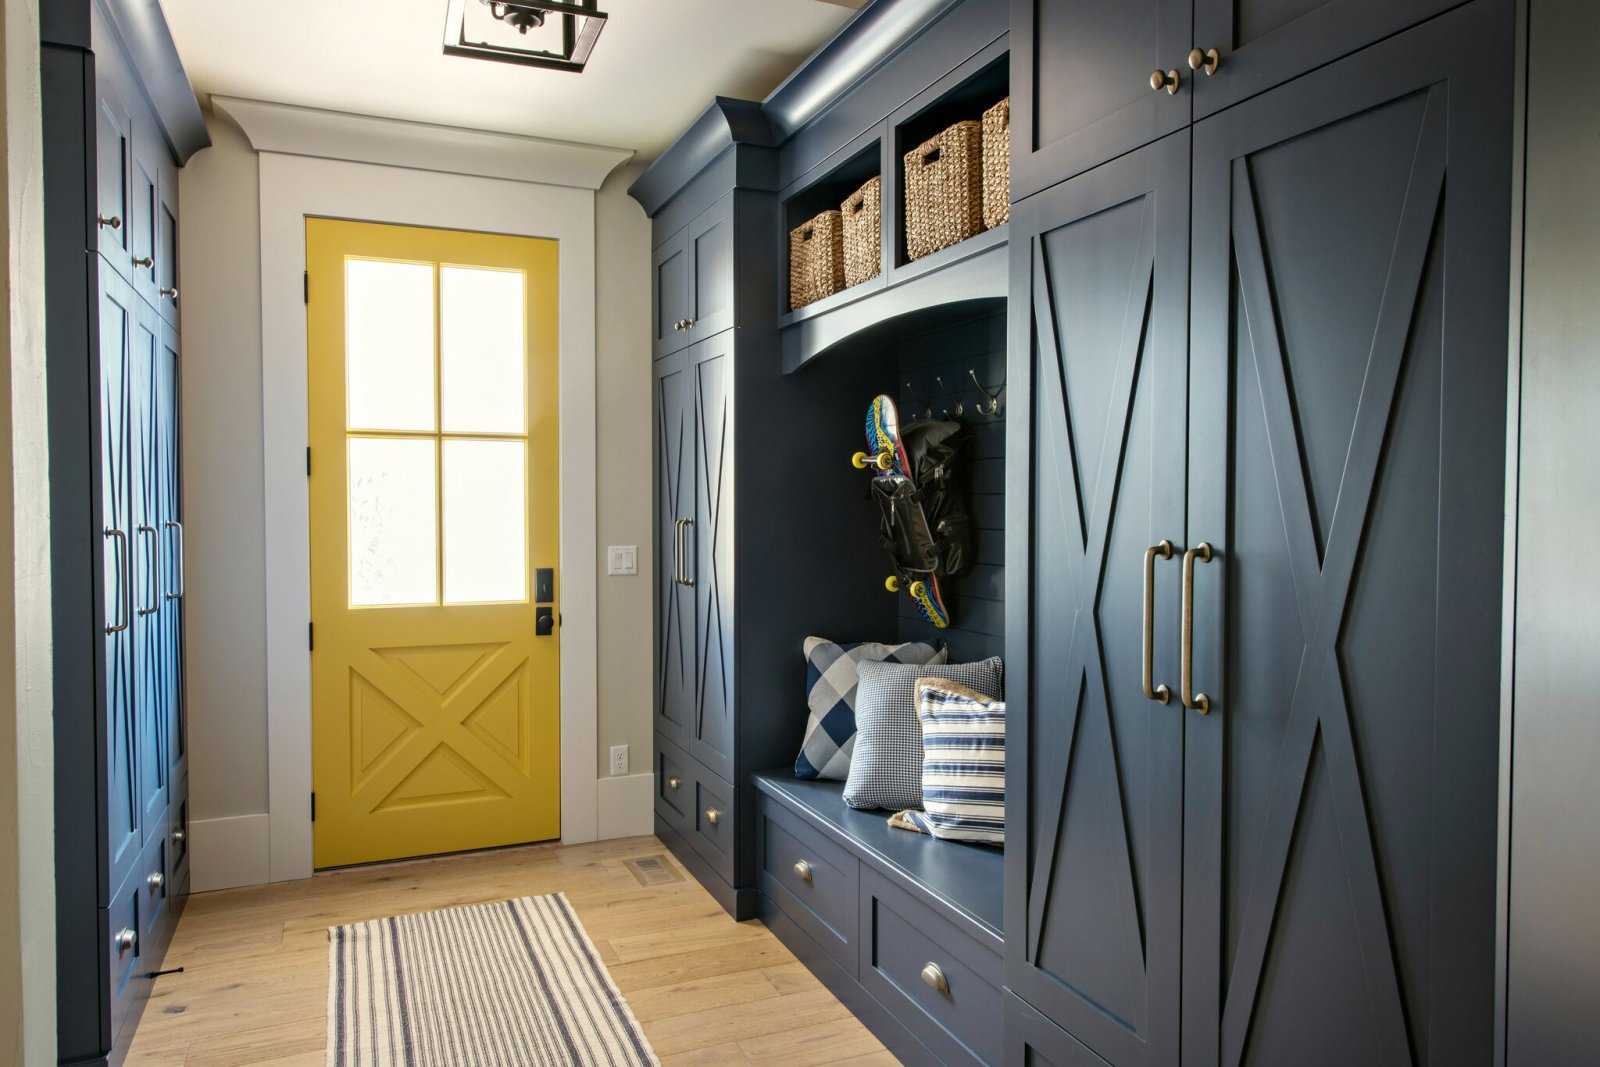 Welsh Design Studio & Make a Bold Statement By Painting Your Interior Doors u2013 Welsh Design ...